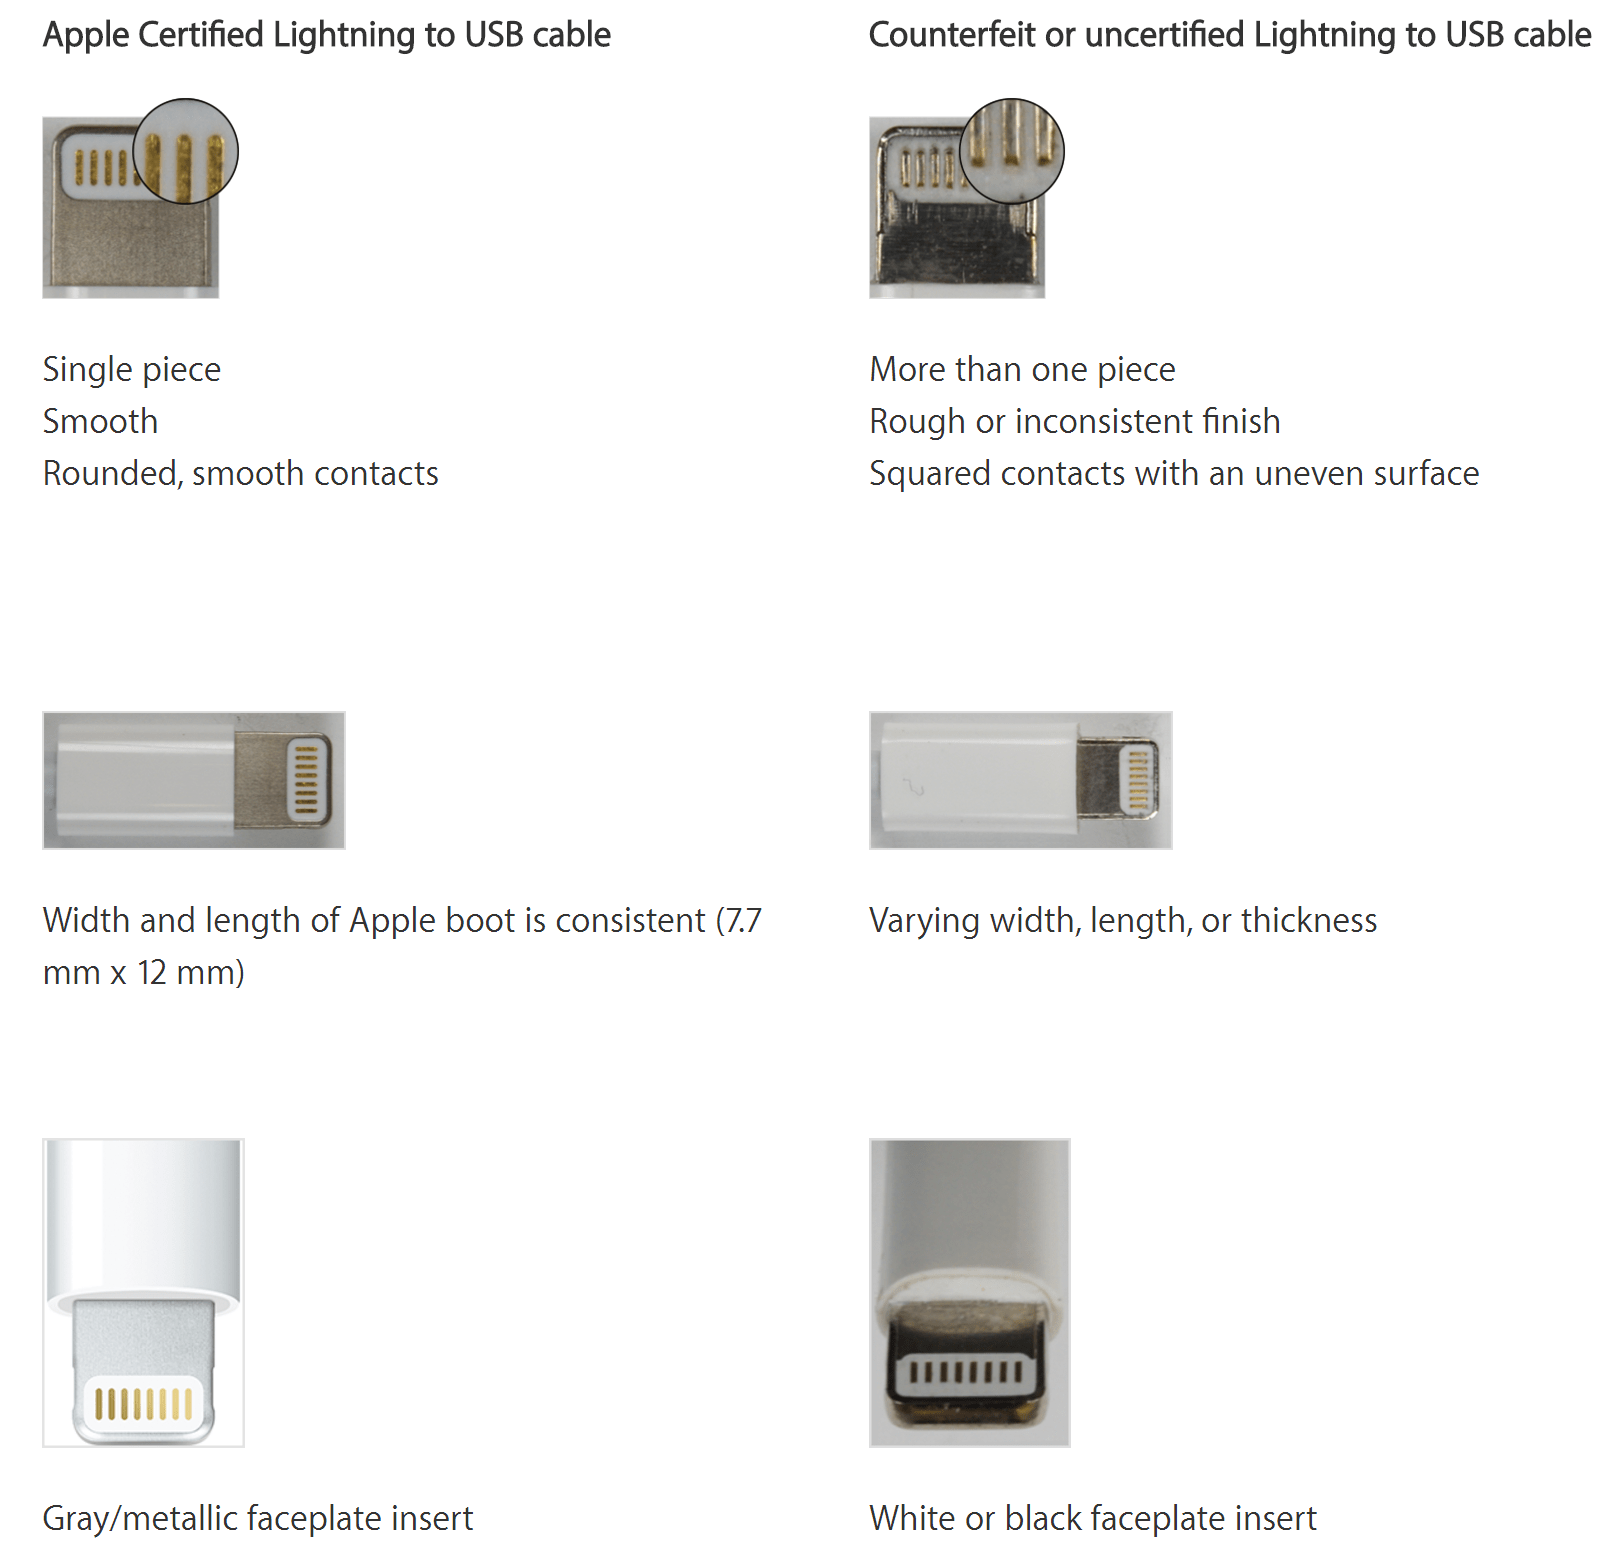 apple-counterfeit-lightning-cable